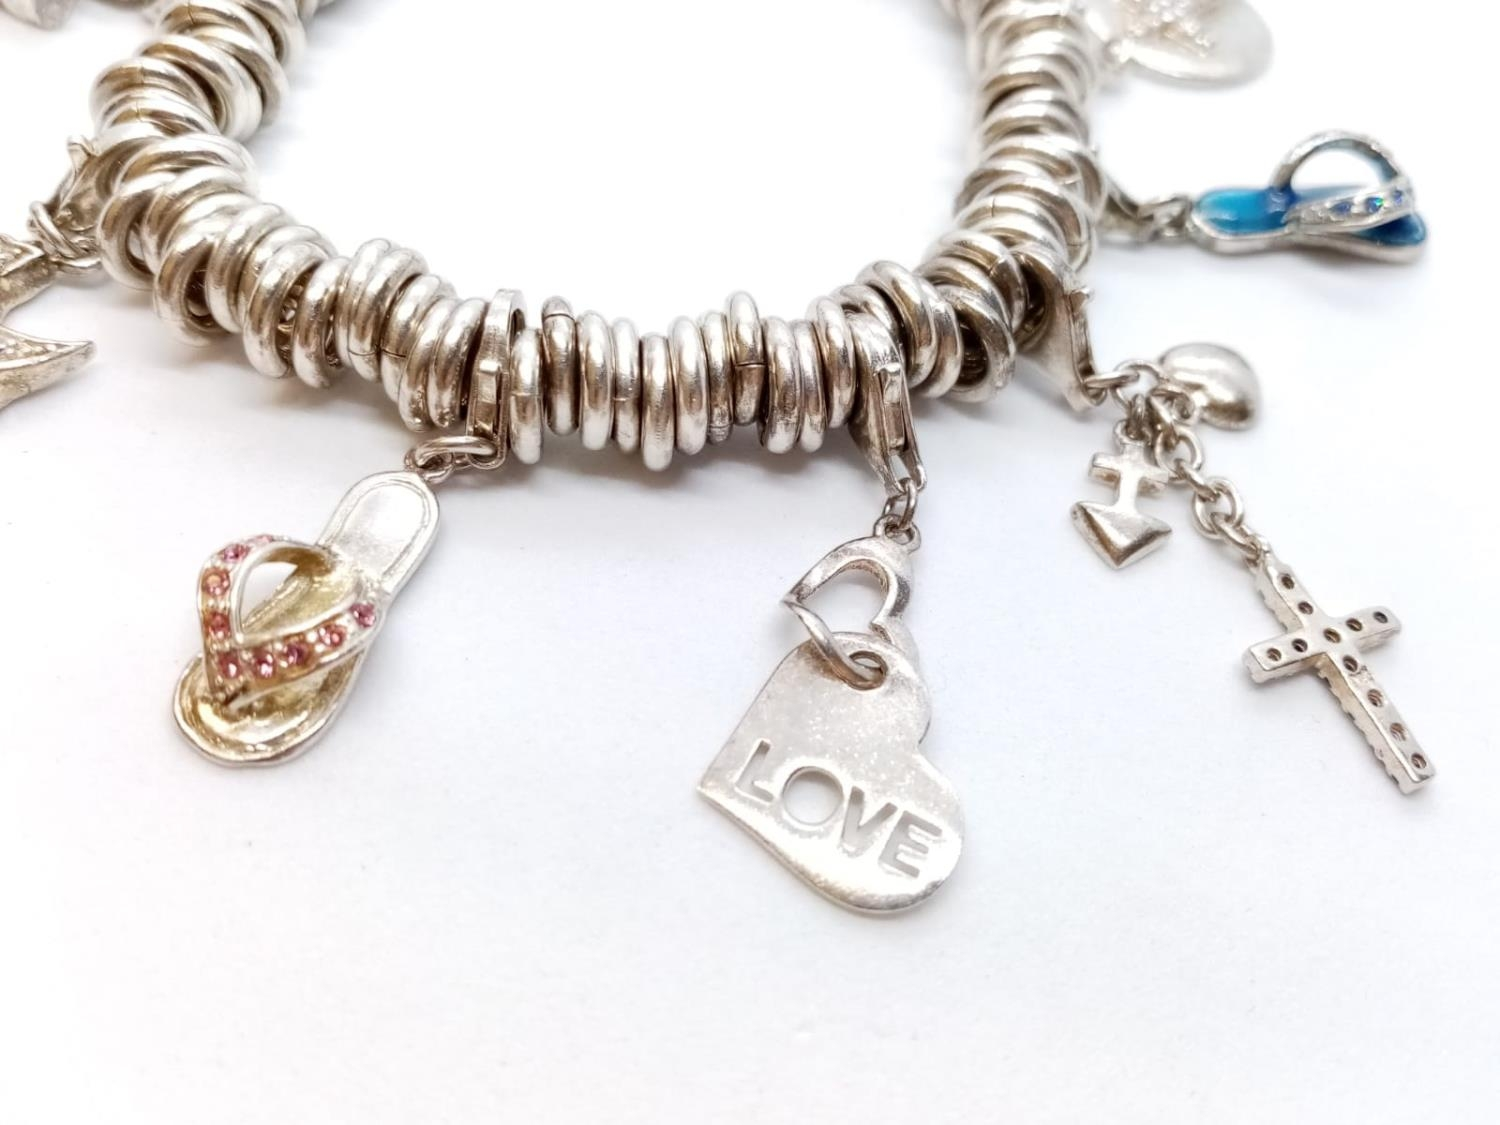 Heavy SILVER BRACELET, London Charm Co. 75.2g 10 charms. - Image 2 of 9